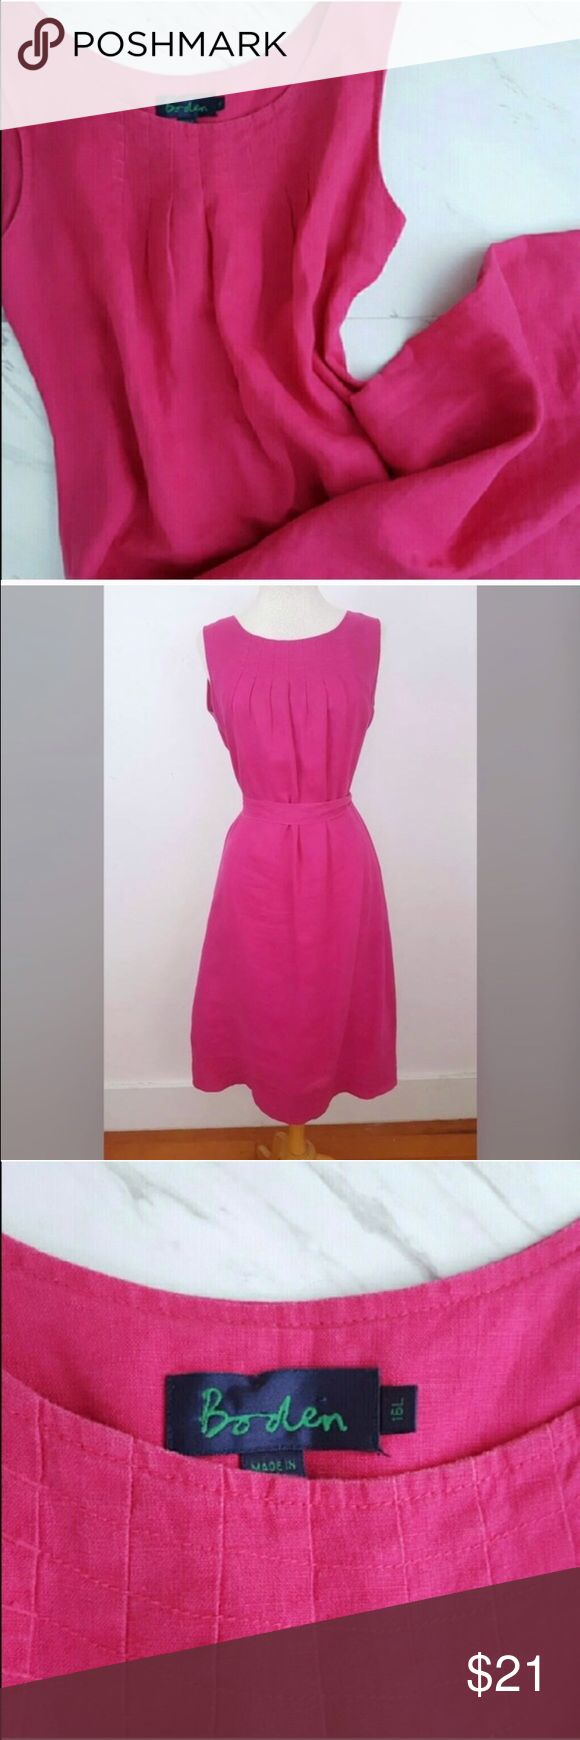 """Boden Dress @RESERVED Beautiful fuscia pink sleeveless dress by Boden. Simple stich pattern on neckline with pleats. Comes with a wrap around belt. Size 16L, measurements: armpit to armpit 19"""", length about 45"""".  It appears that the previous owner stitched up a seam on the left arm hole. Structure is solid but thestitchingis a different shade. see last photo for reference. ***discounted price due to small tear in dress Boden Dresses"""